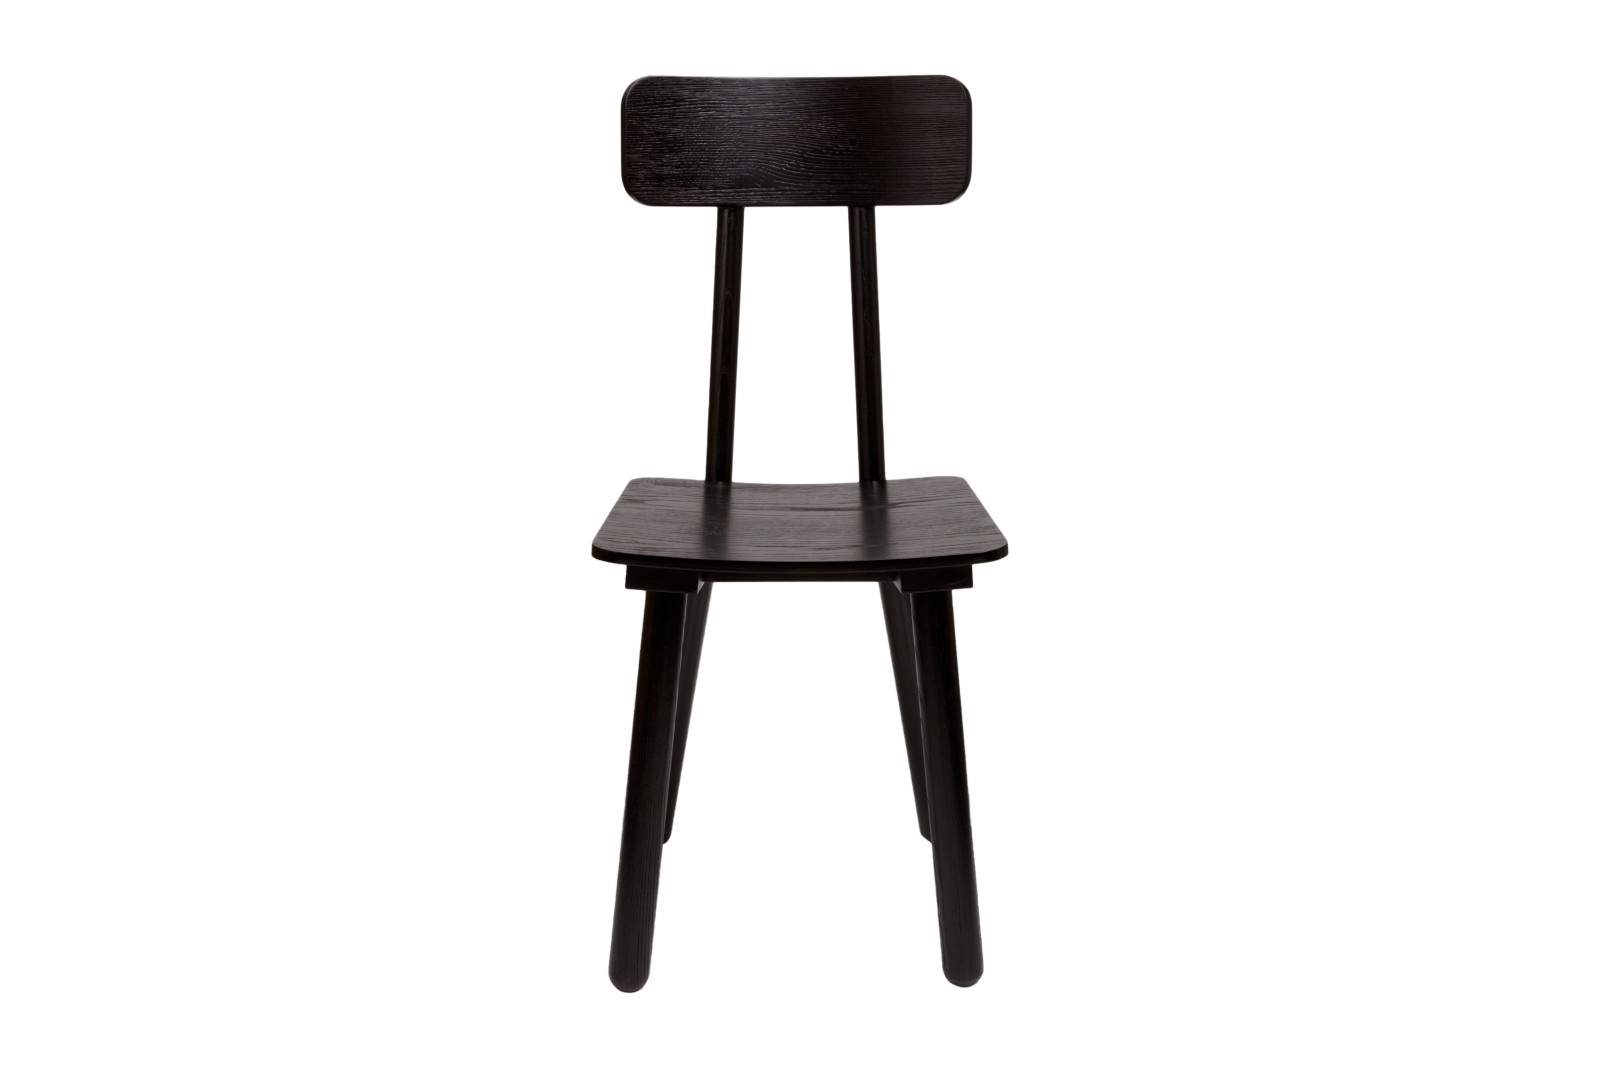 Another Chair RAL9004 Black